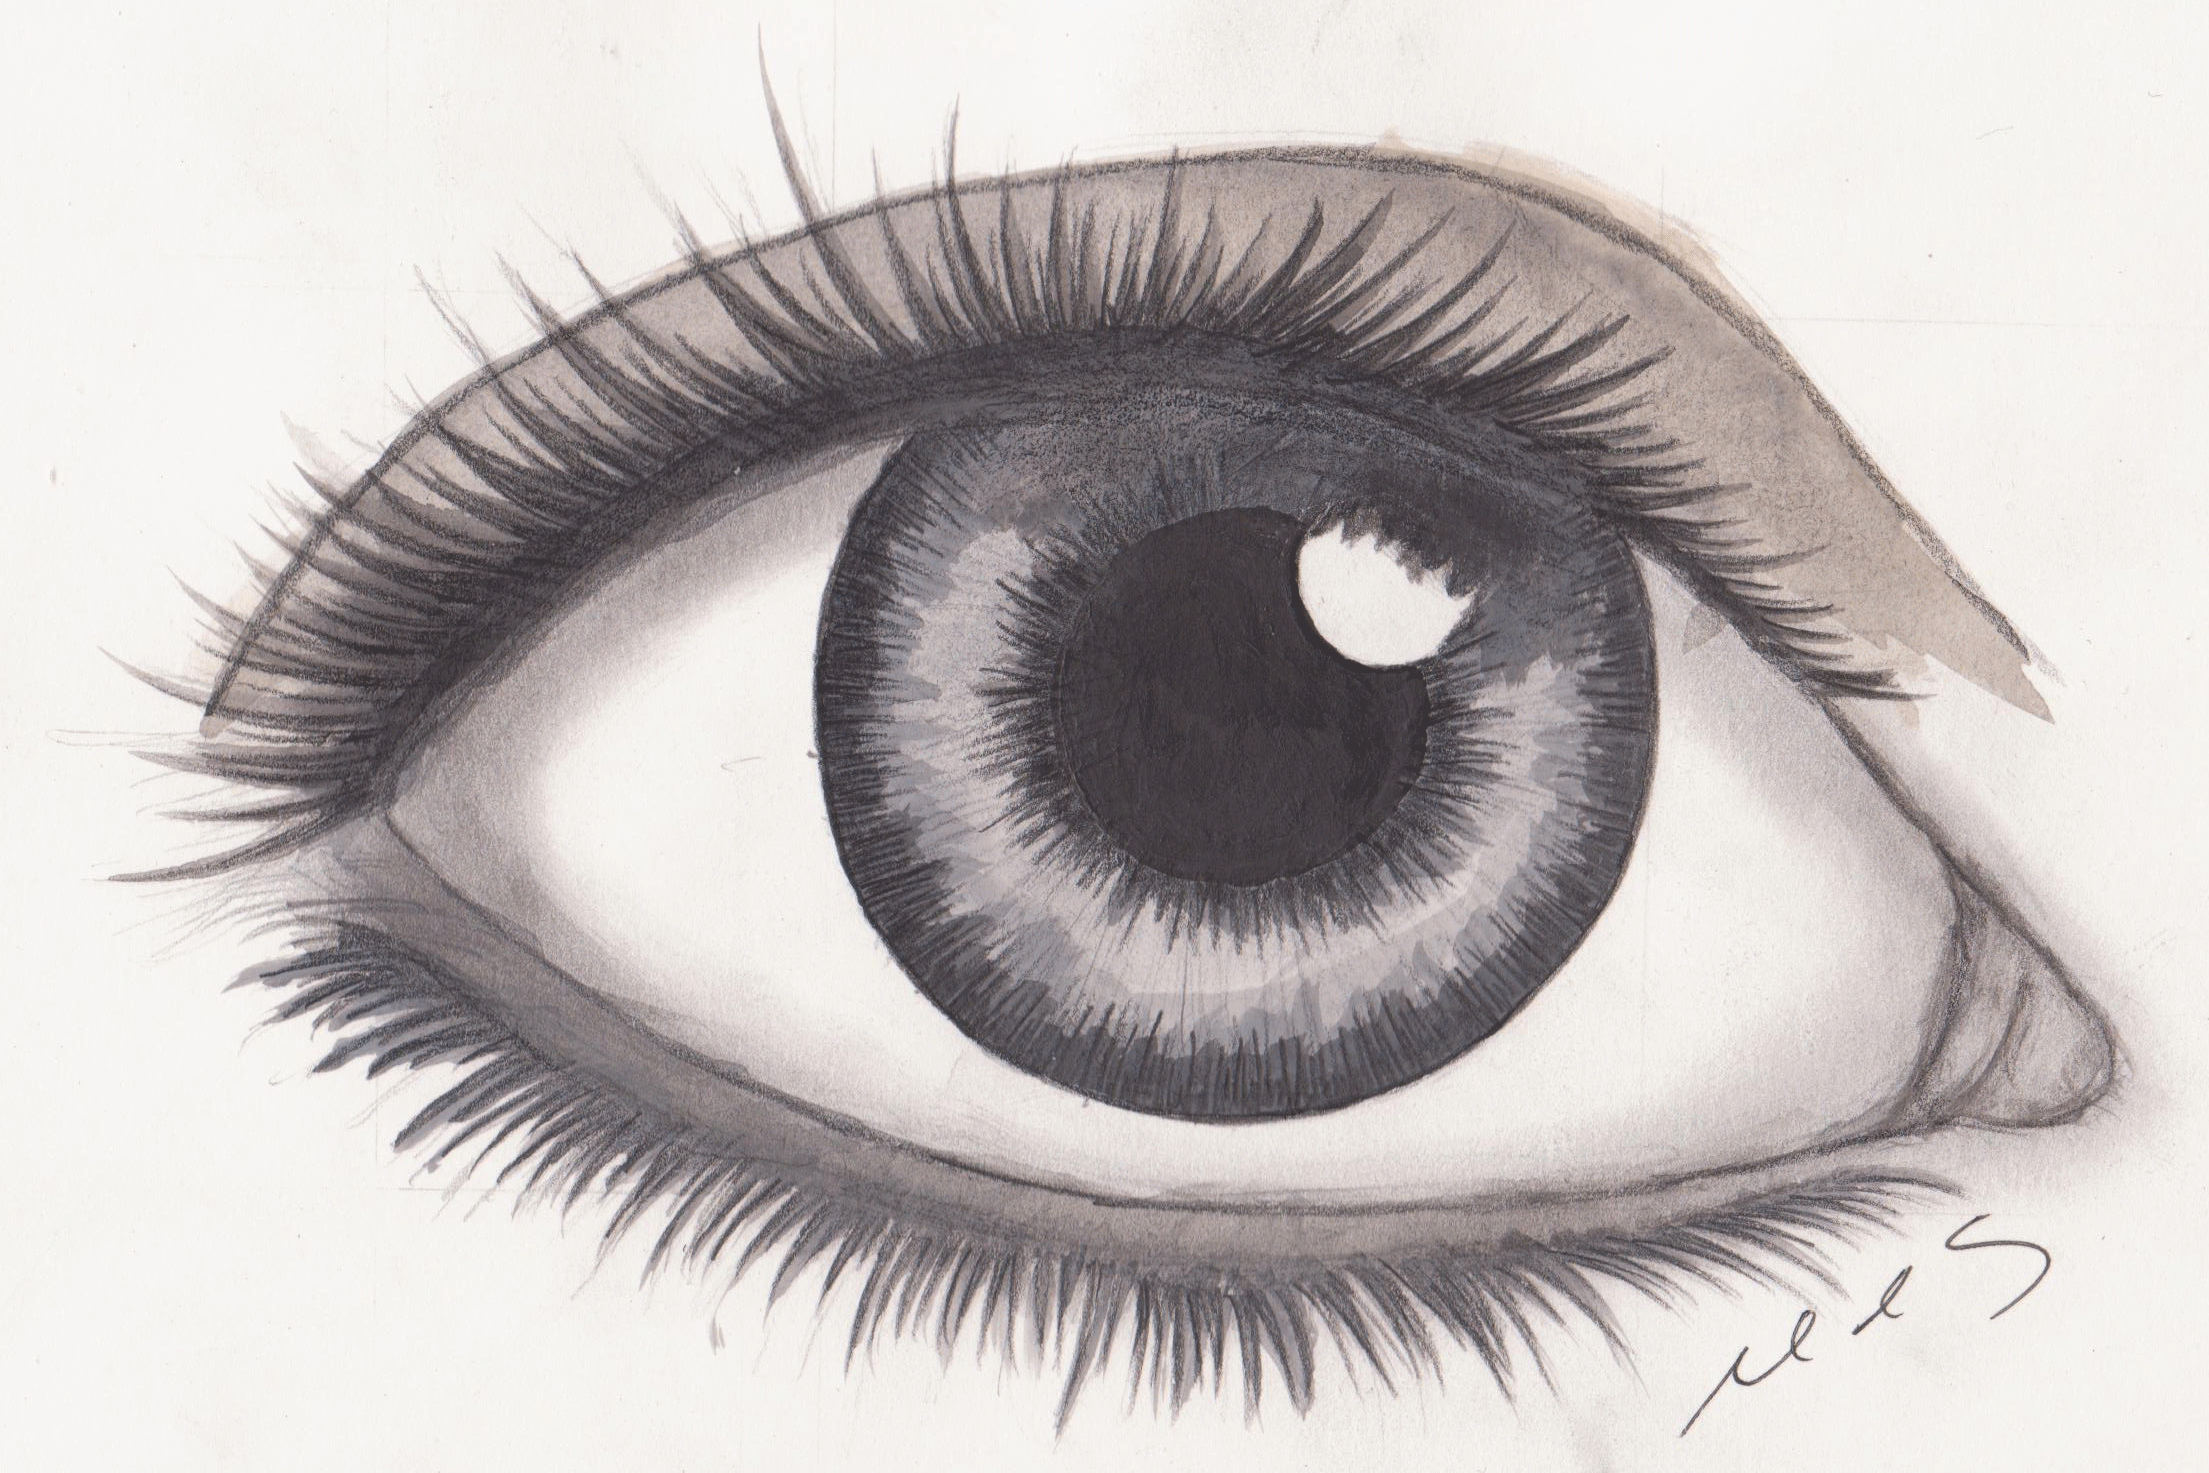 Realistic eye drawing by mhylands on deviantart for Cool stuff to draw that s easy